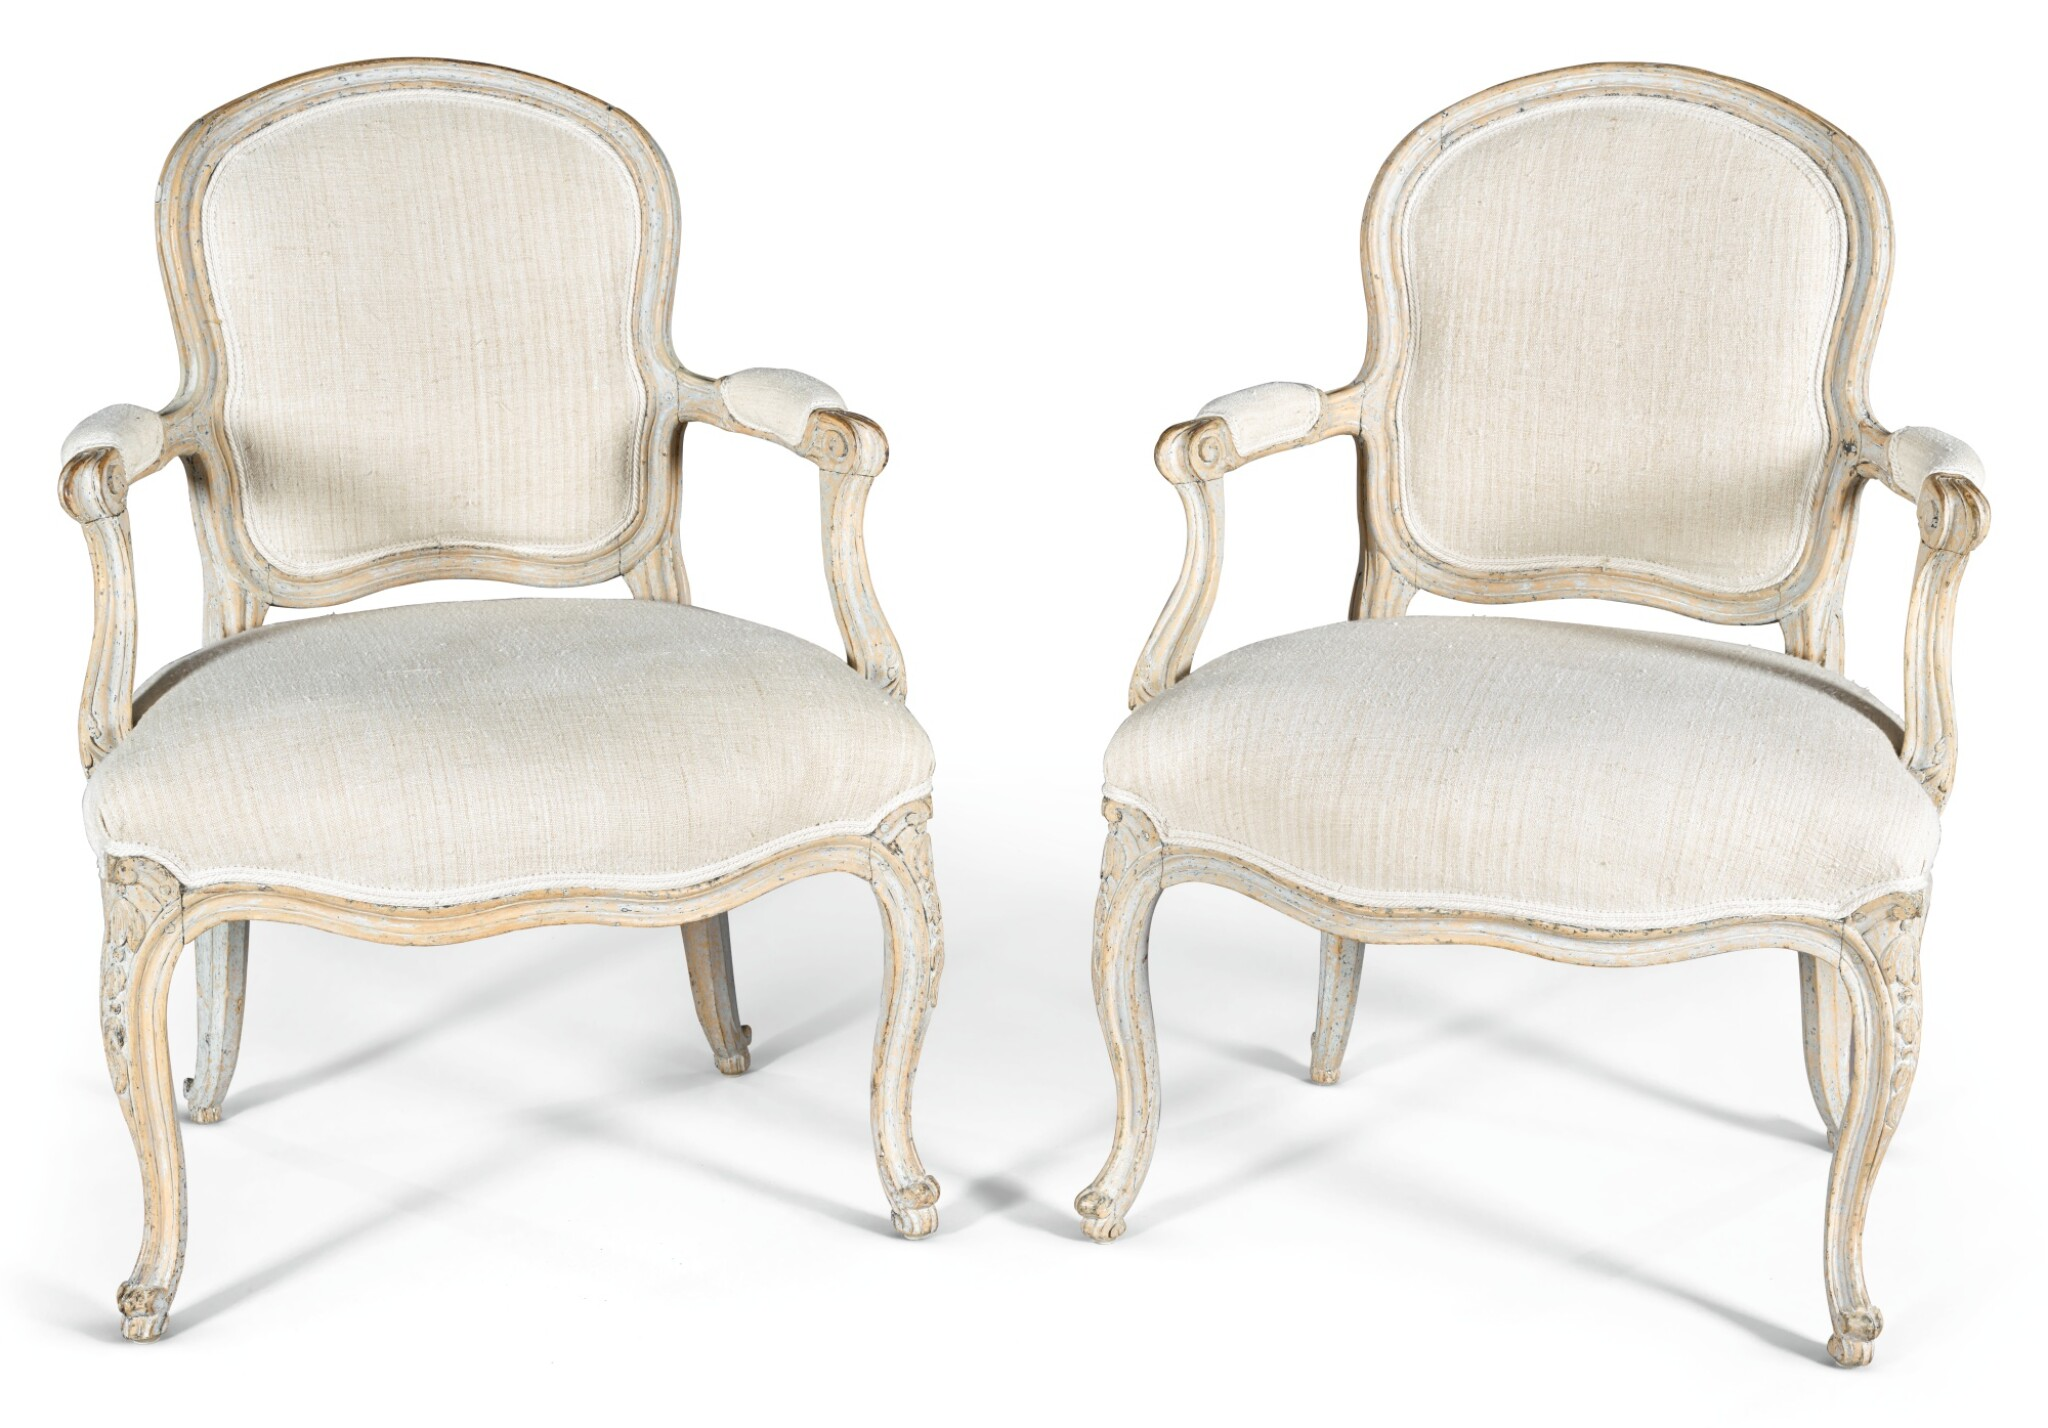 View 1 of Lot 191. A PAIR OF LOUIS XV PAINTED AND CARVED FAUTEUILS À LA REINE MID-18TH CENTURY, PROBABLY SWEDISH.